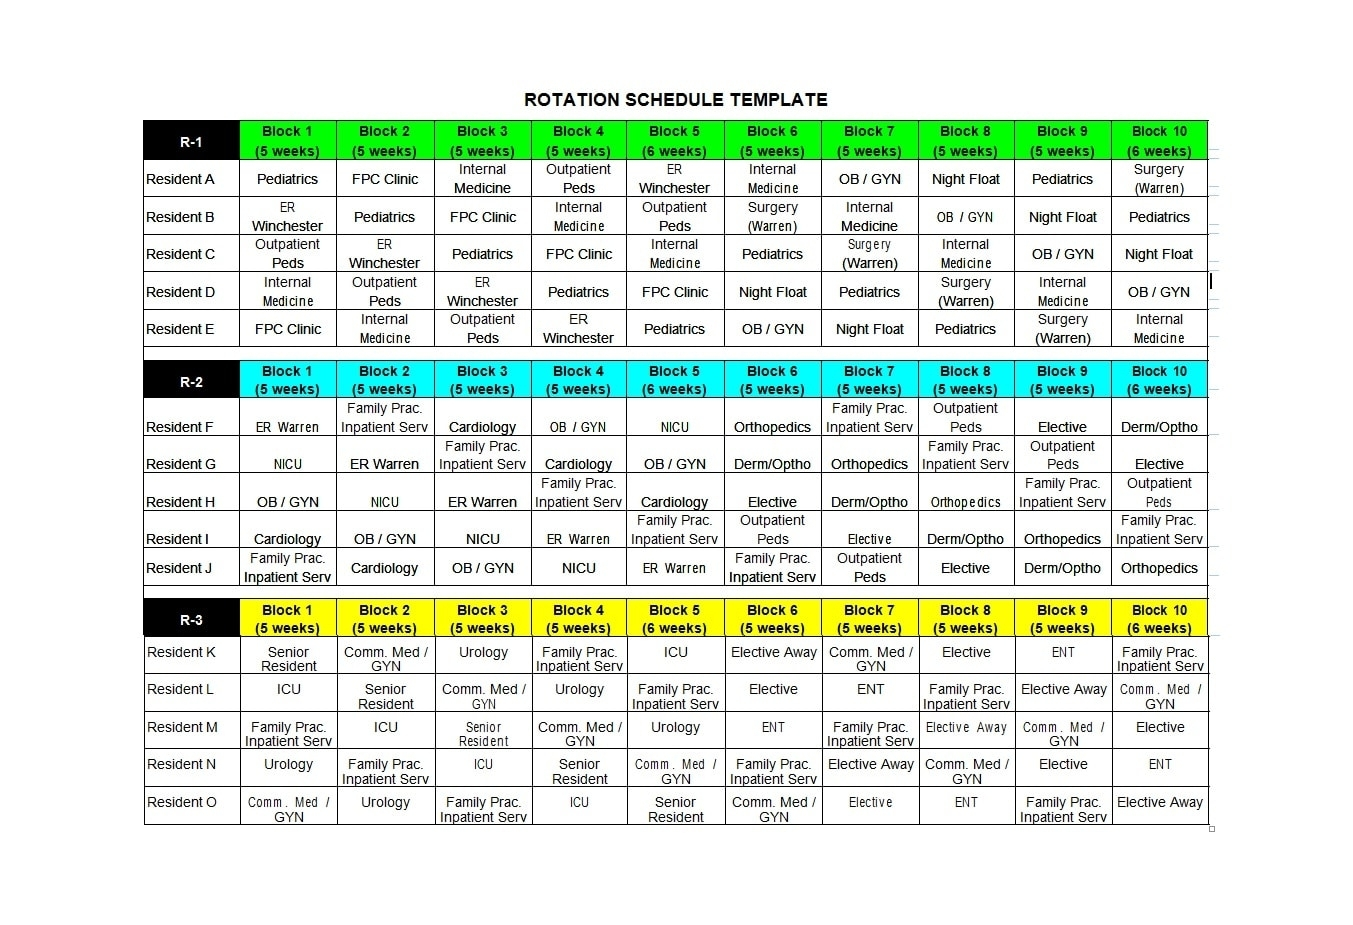 50 Free Rotating Schedule Templates For Your Company - Templatearchive